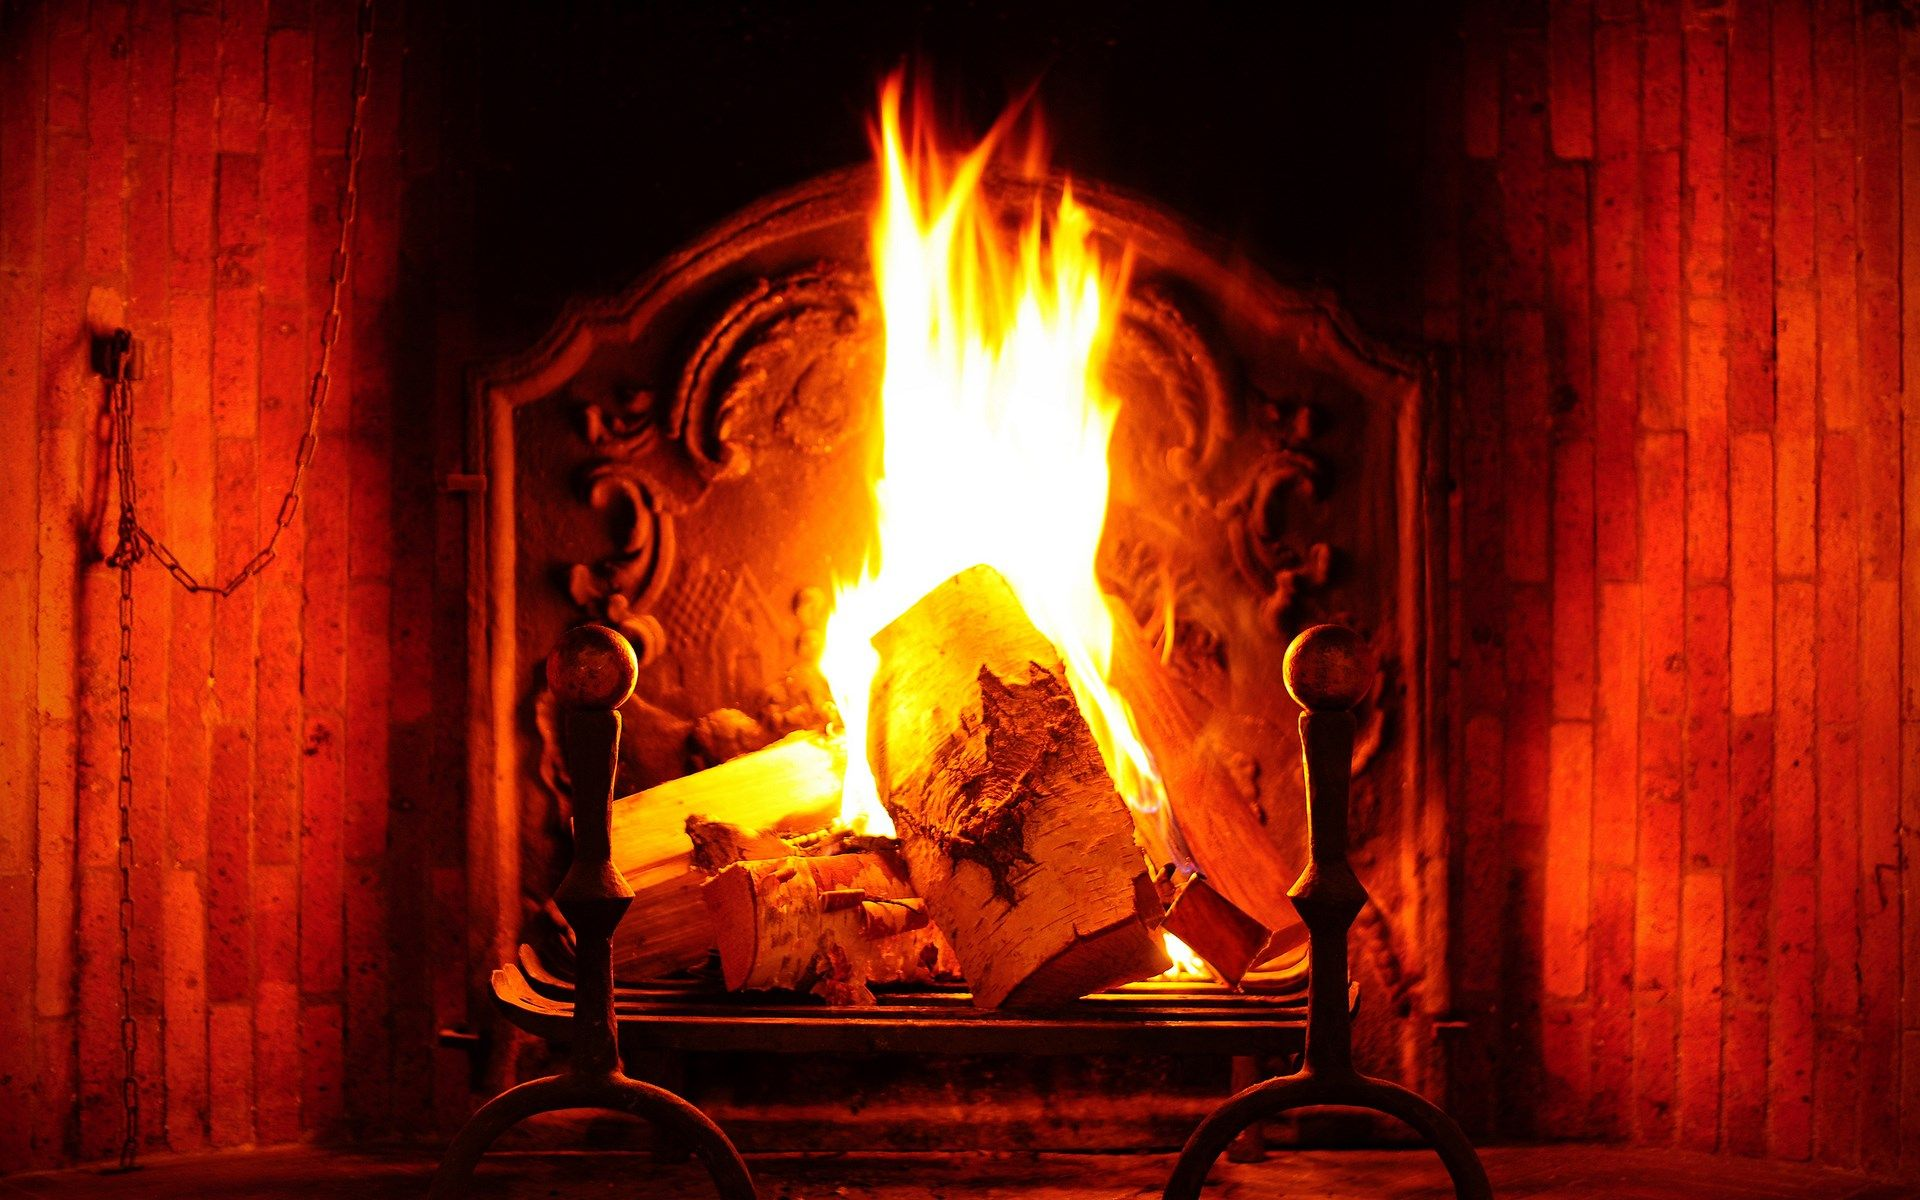 Fireplace Hd Wallpapers Ololoshenka Pinterest Hearth Fire And